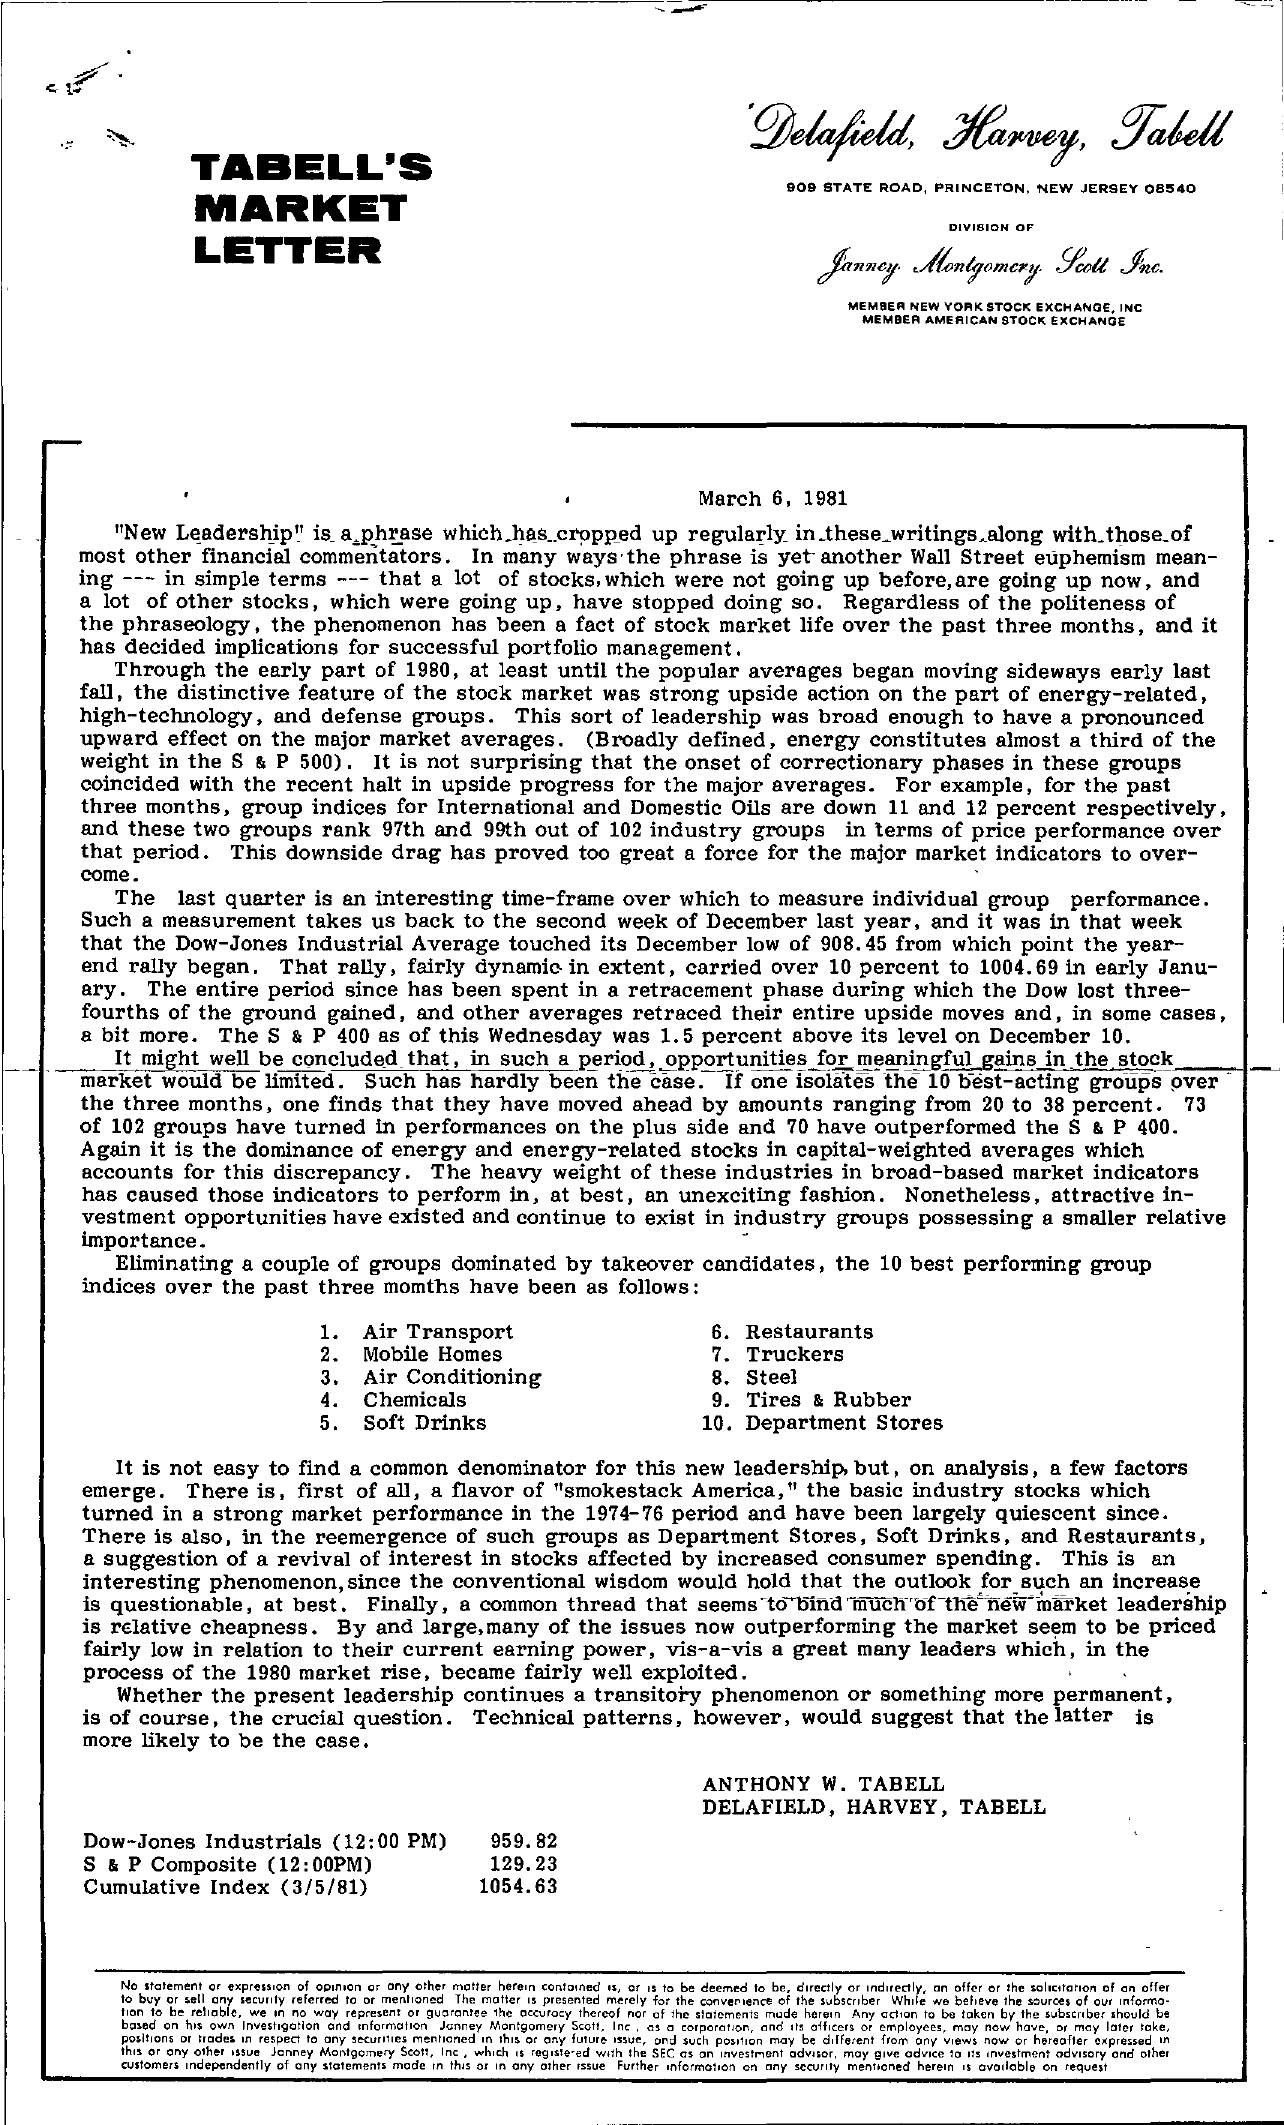 Tabell's Market Letter - March 06, 1981